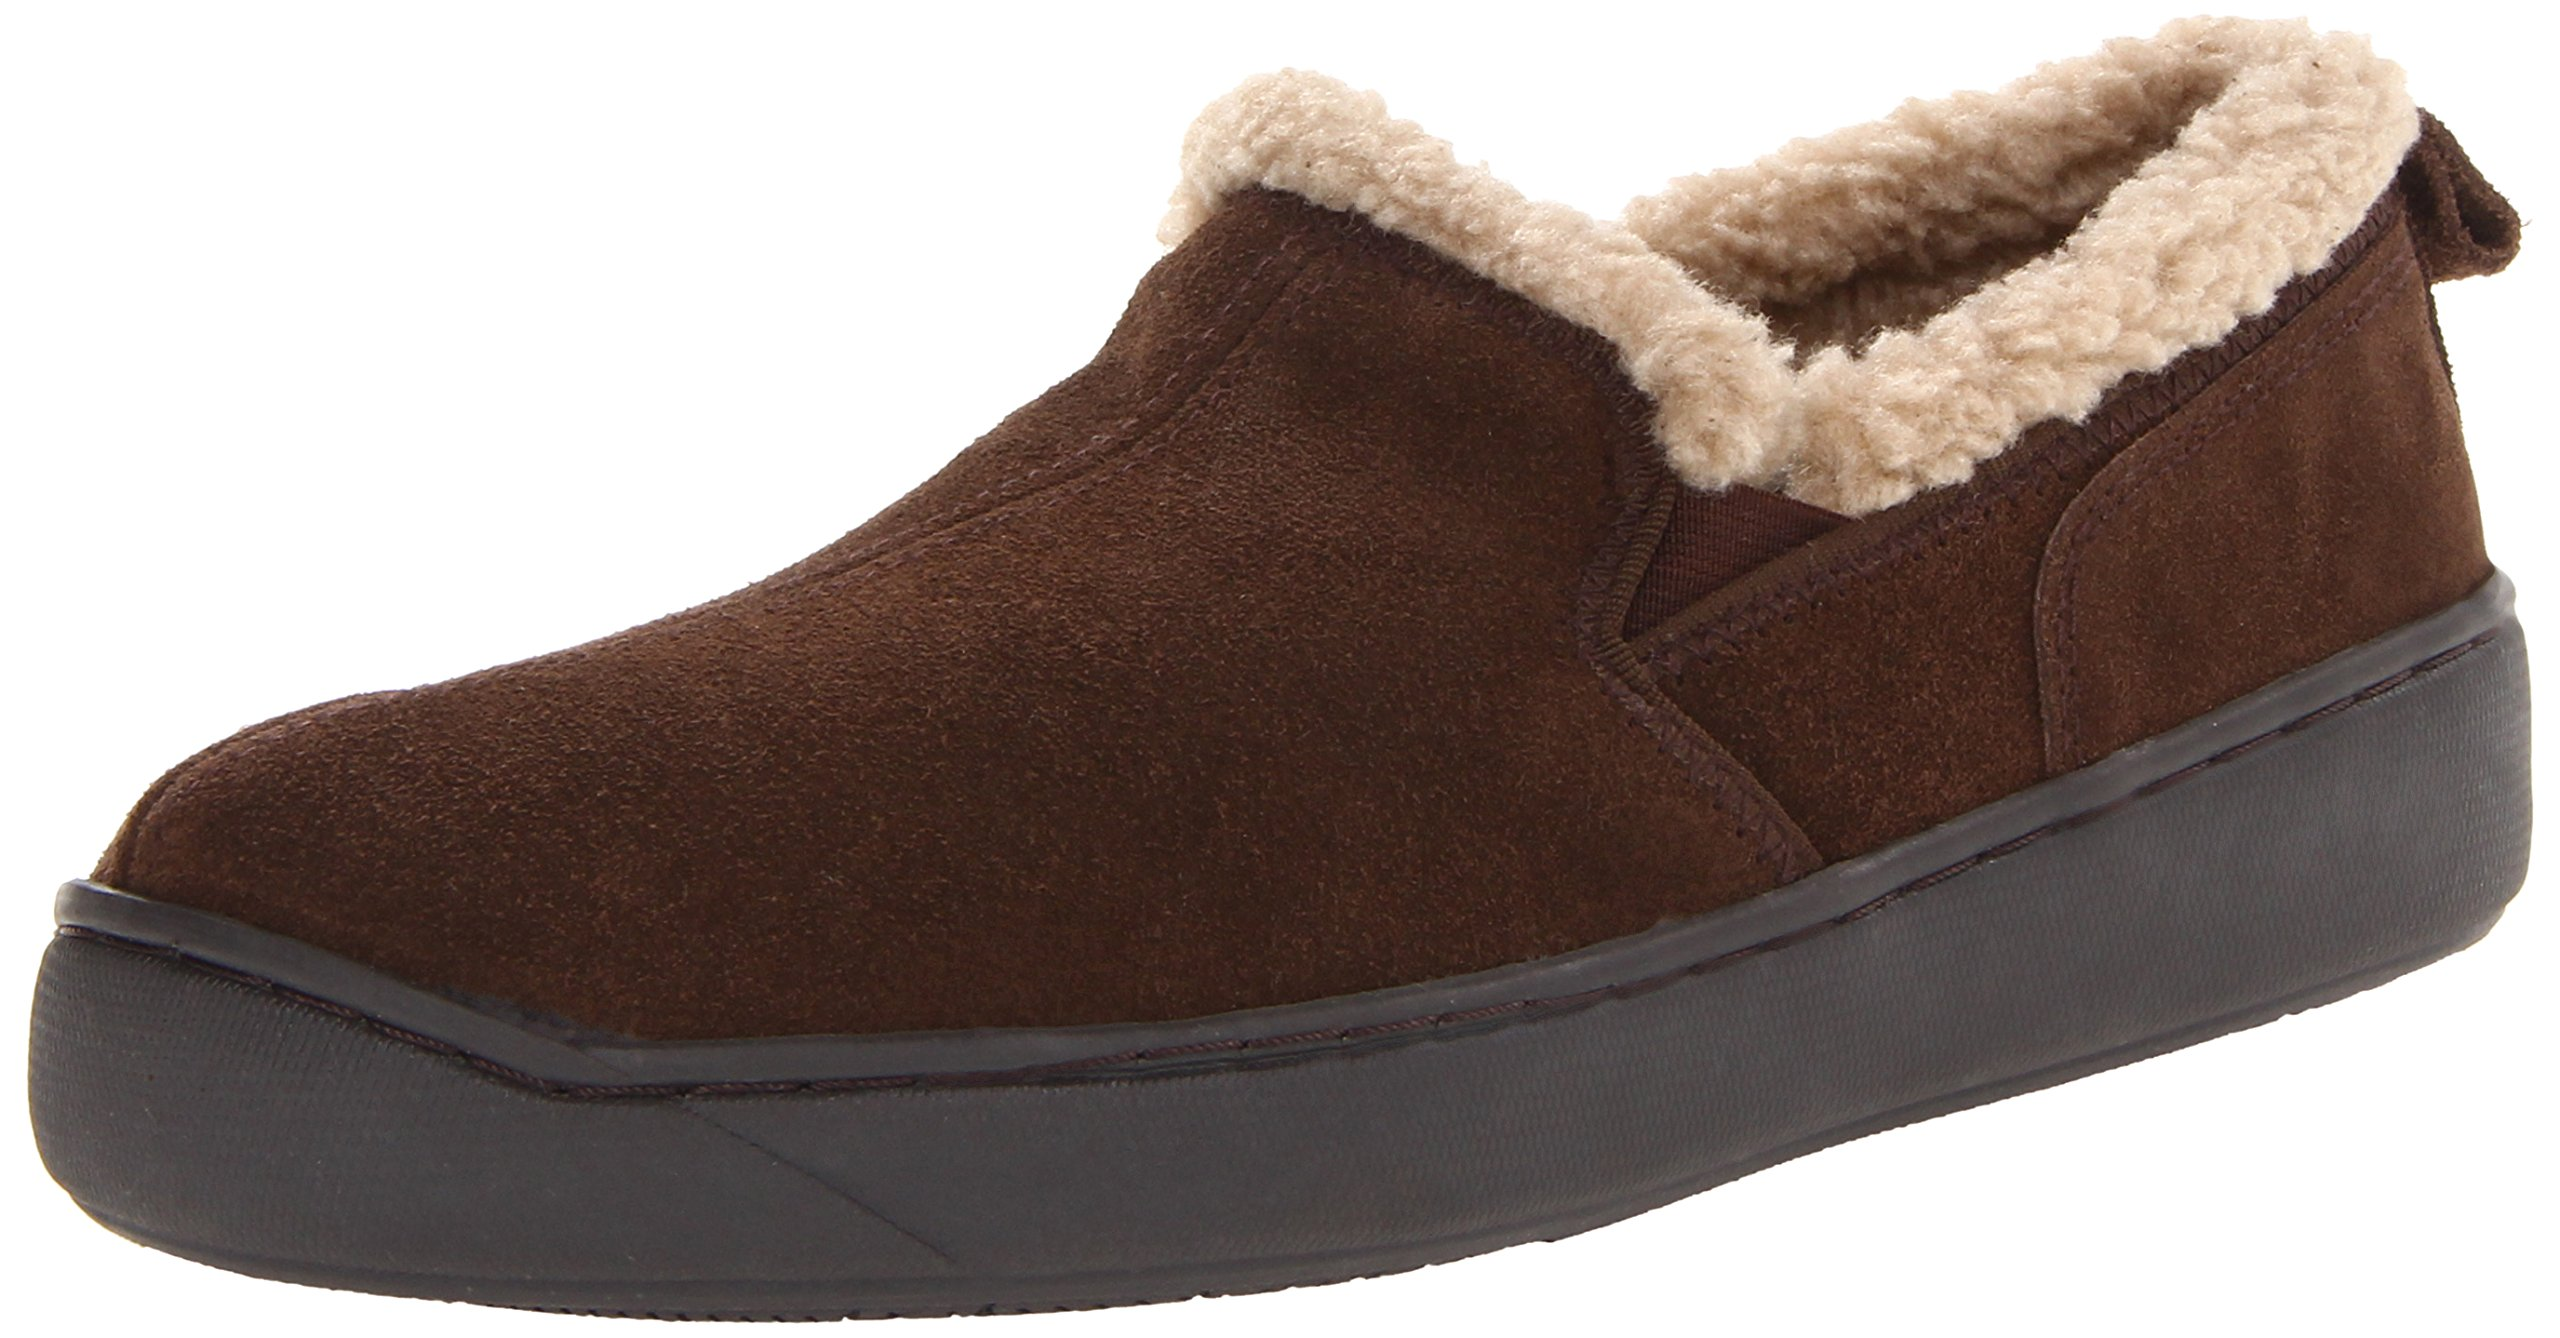 L.B. Evans Men's Hideaways Roderic Chocolate Slipper - 11 D(M) US